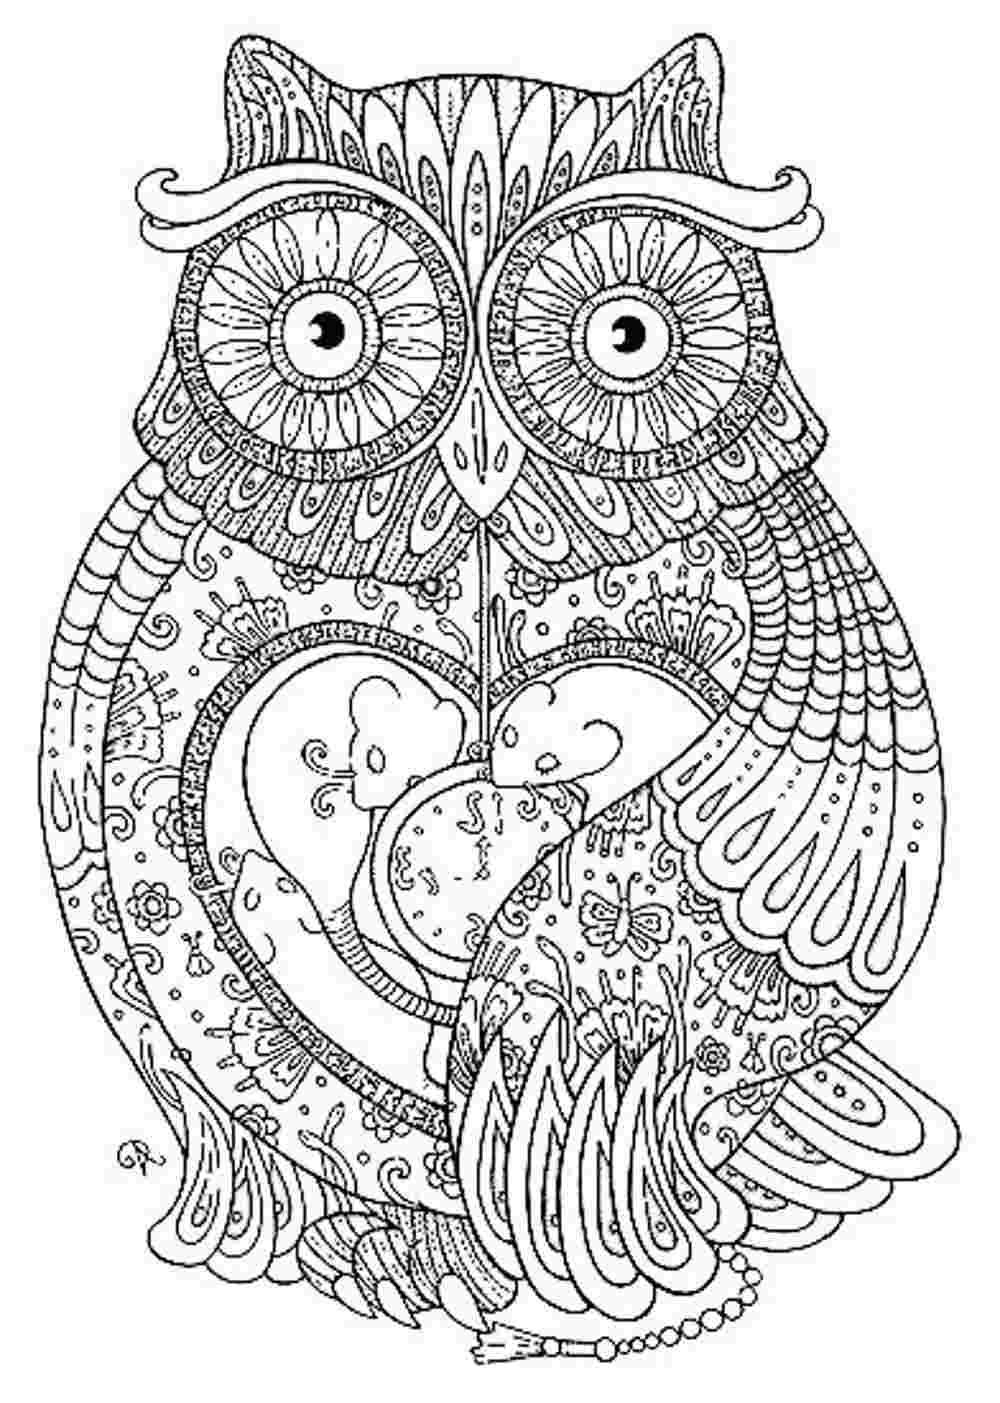 animal mandala coloring pages Collection-Animal mandala coloring pages to and print for free 12-j